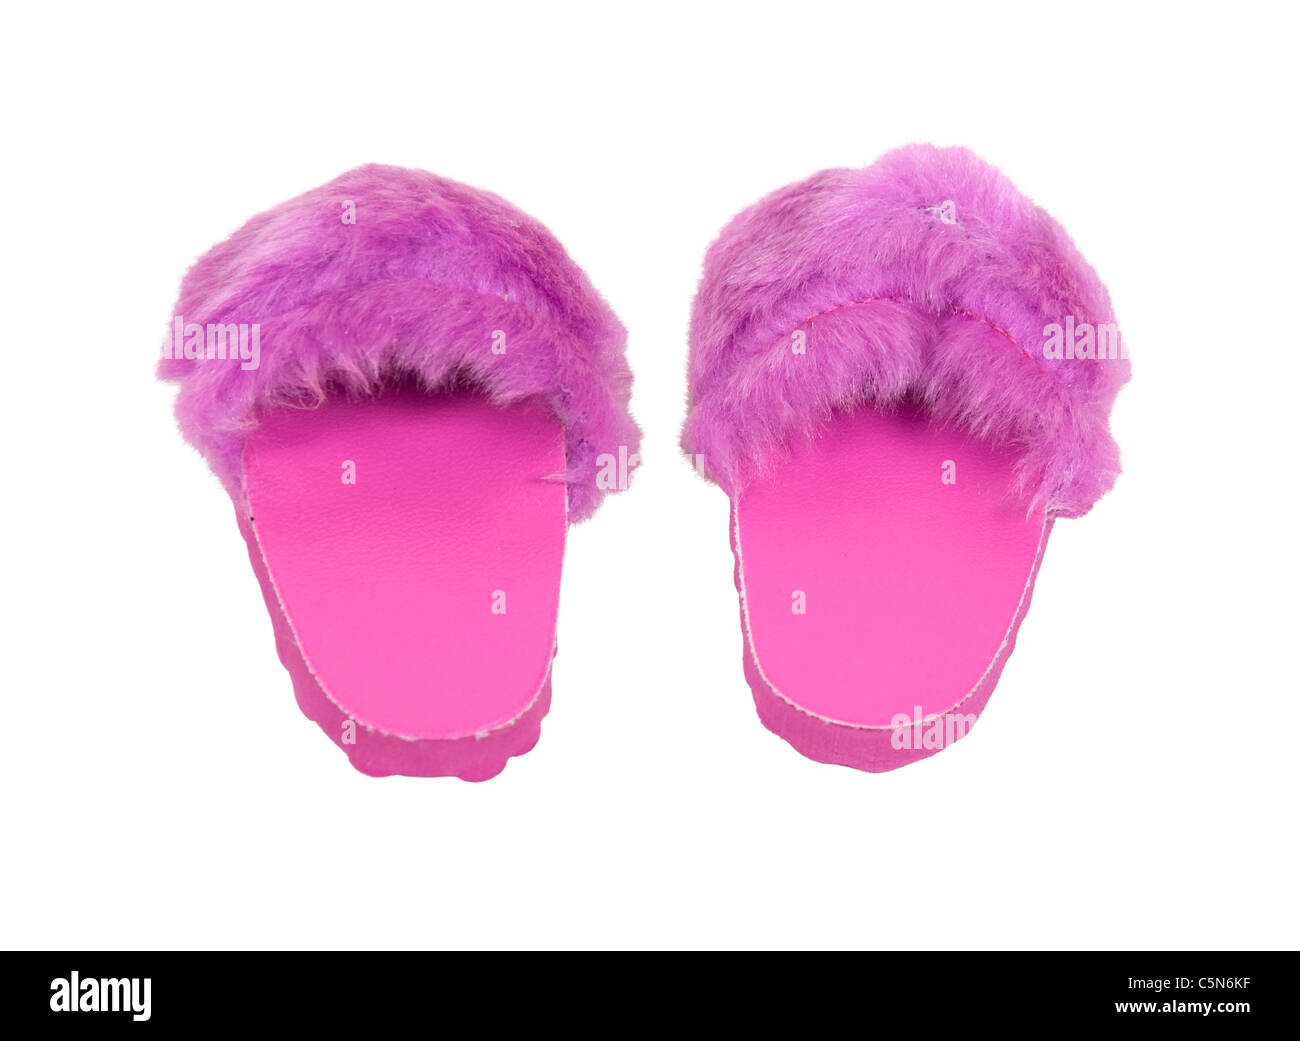 9e7e88685a0 Fuzzy pink slippers ready to wear at home when relaxing in luxury - path  included